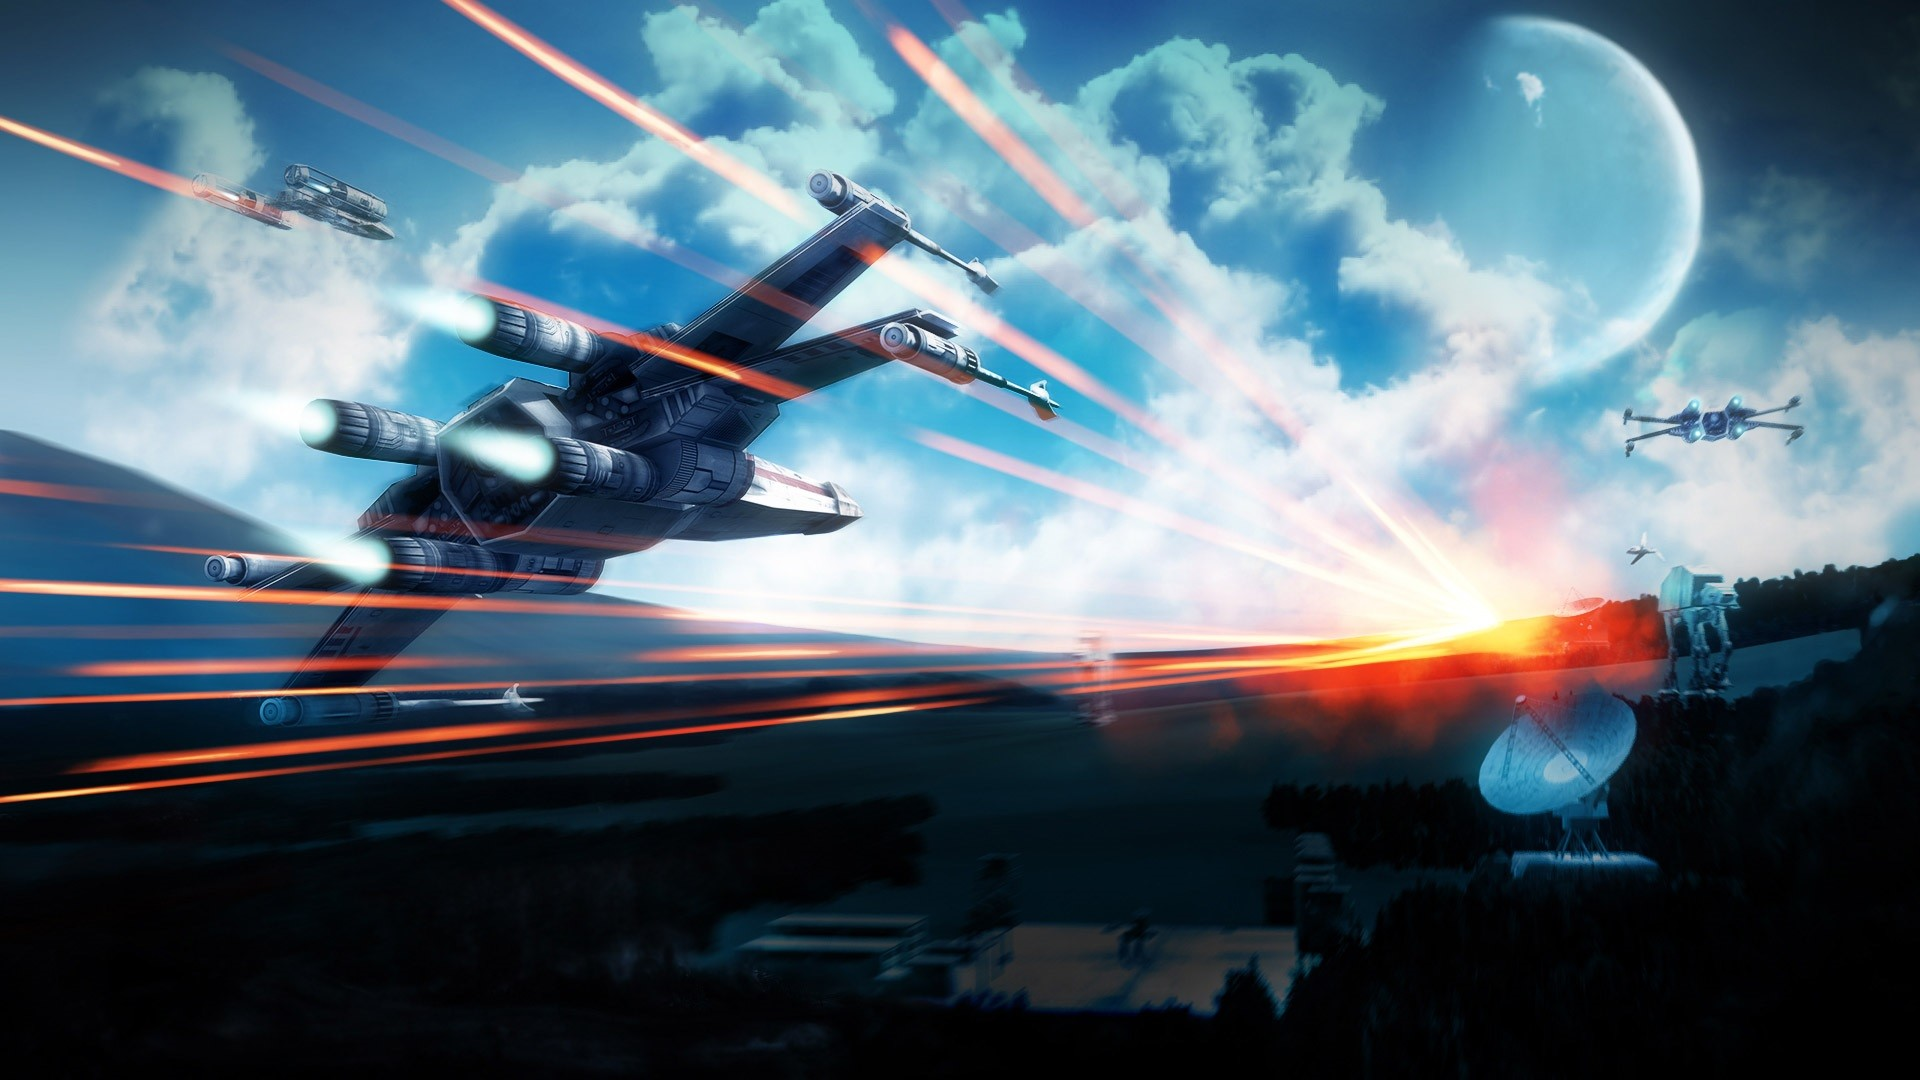 Star Wars The Force Awakens Image …